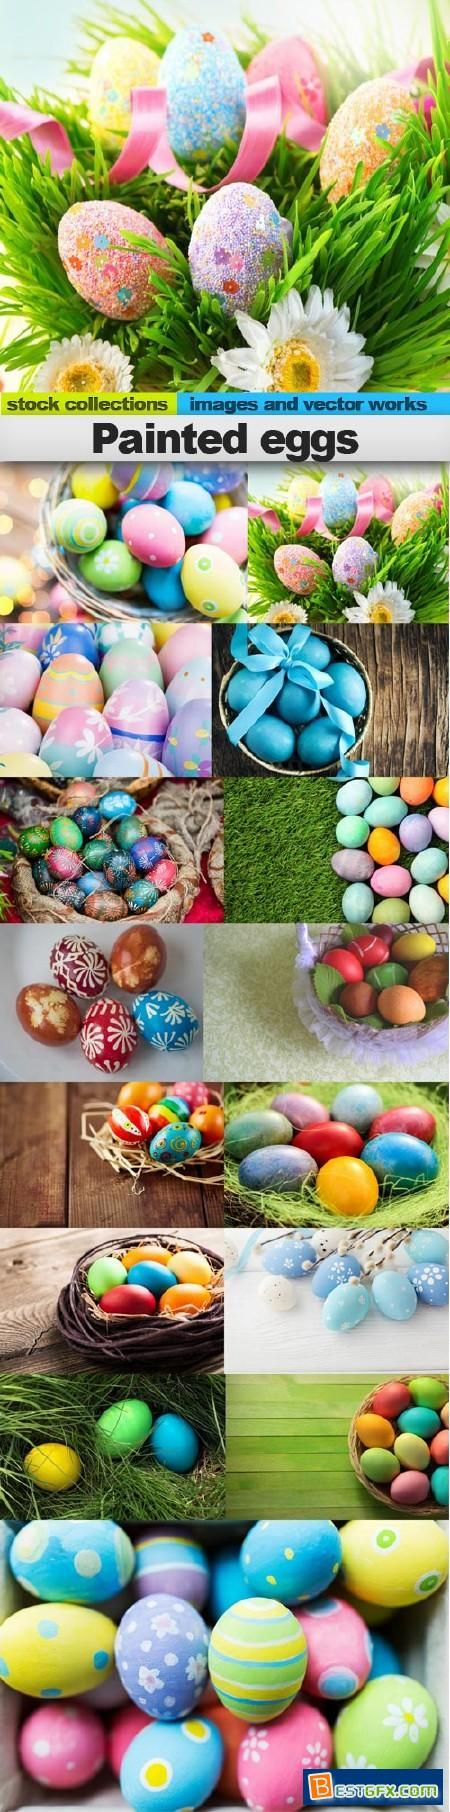 Painted eggs, 15 x UHQ JPEG